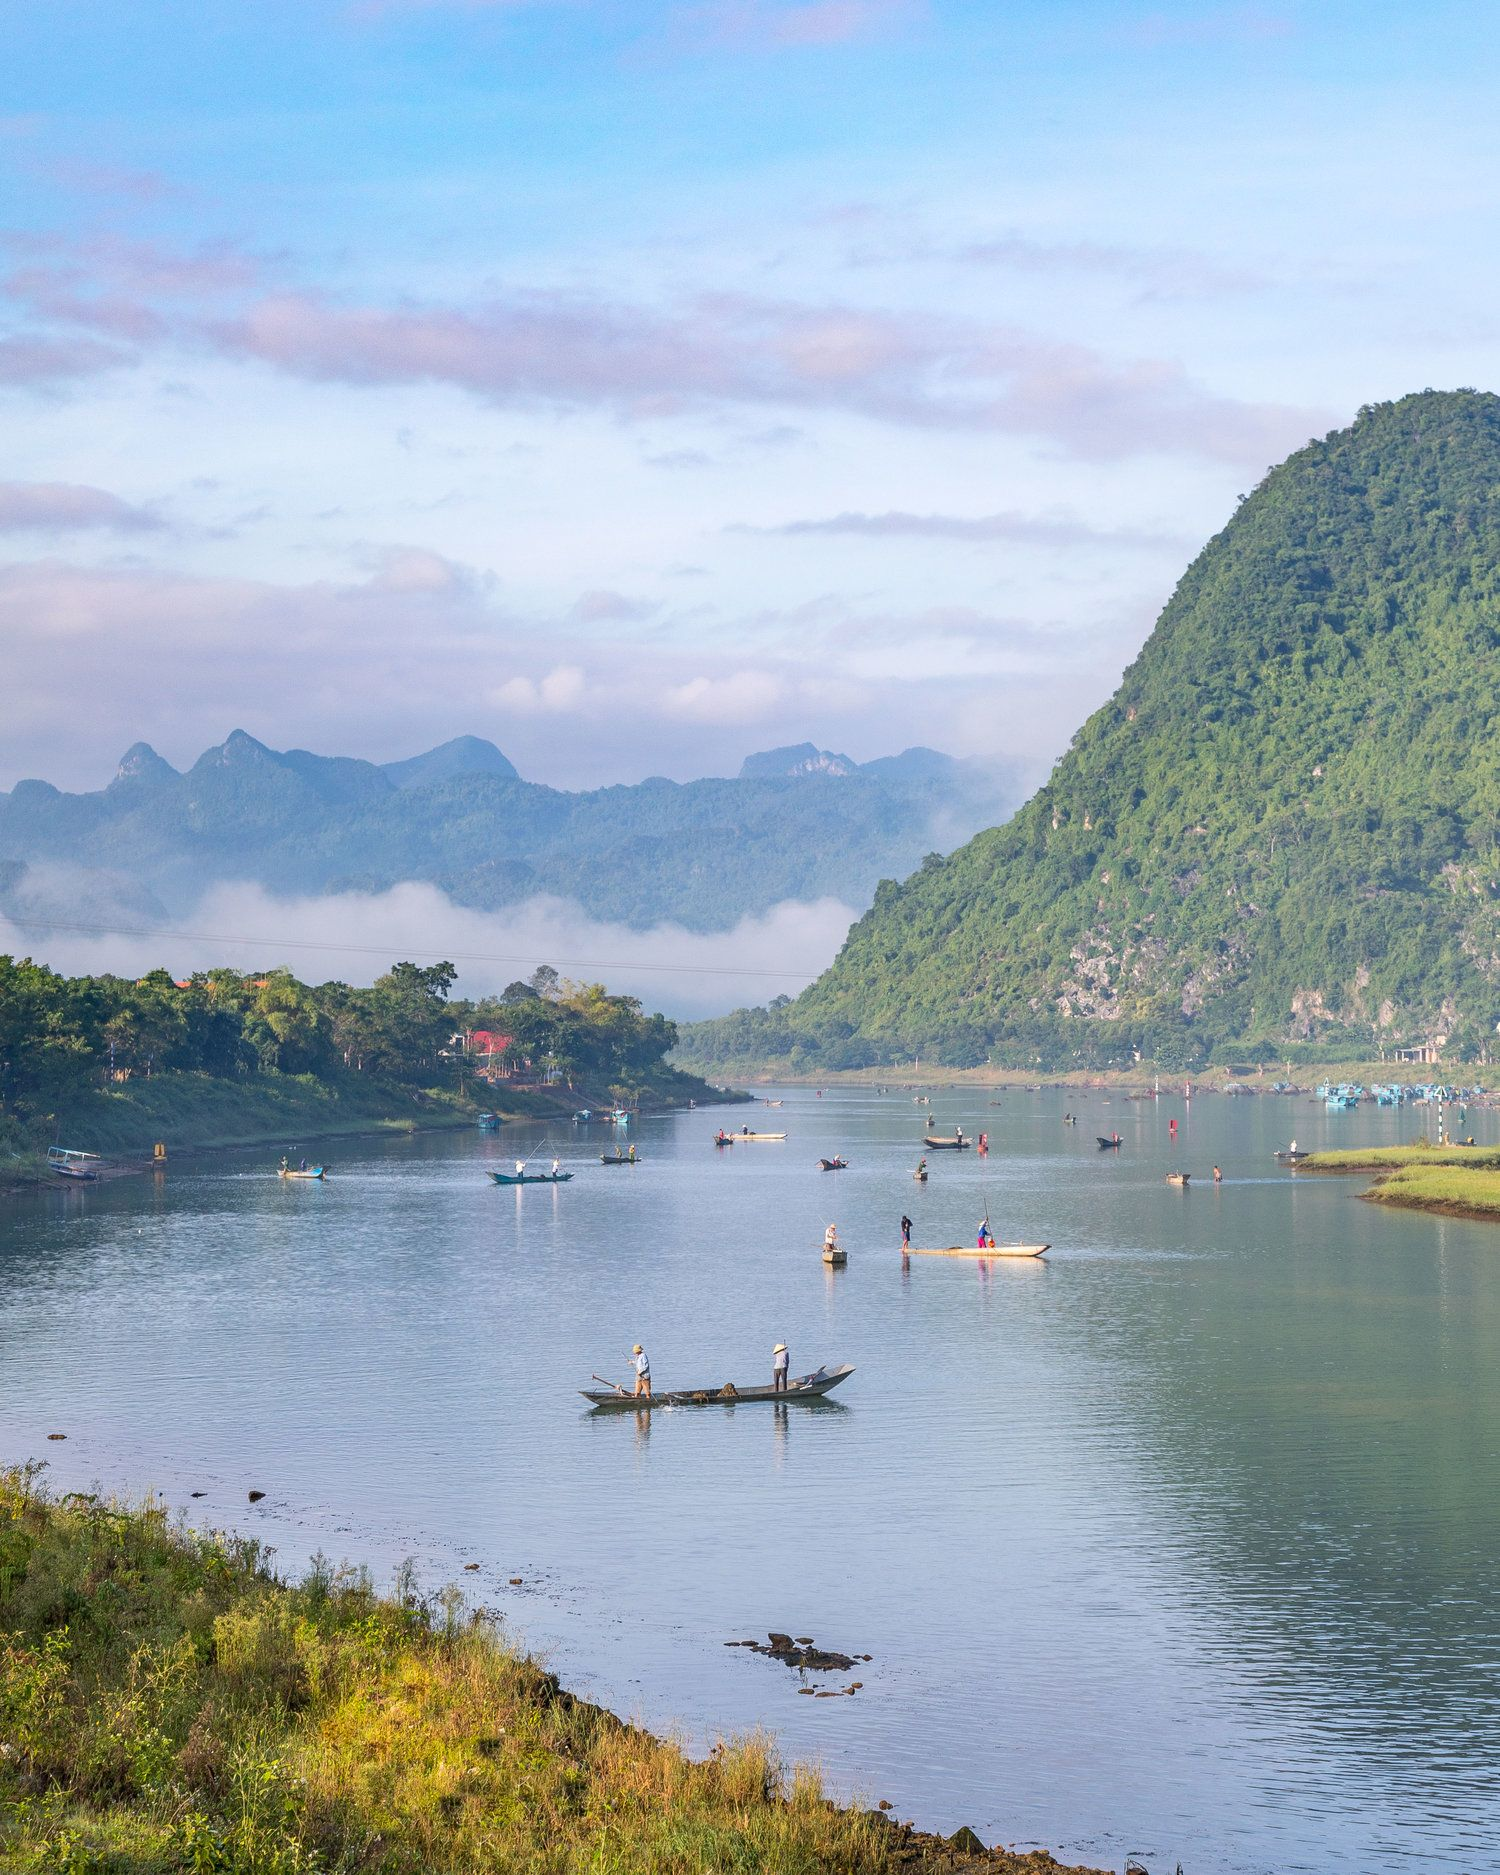 Vietnam Itinerary An epic 2 week trip from Hanoi to Hoi